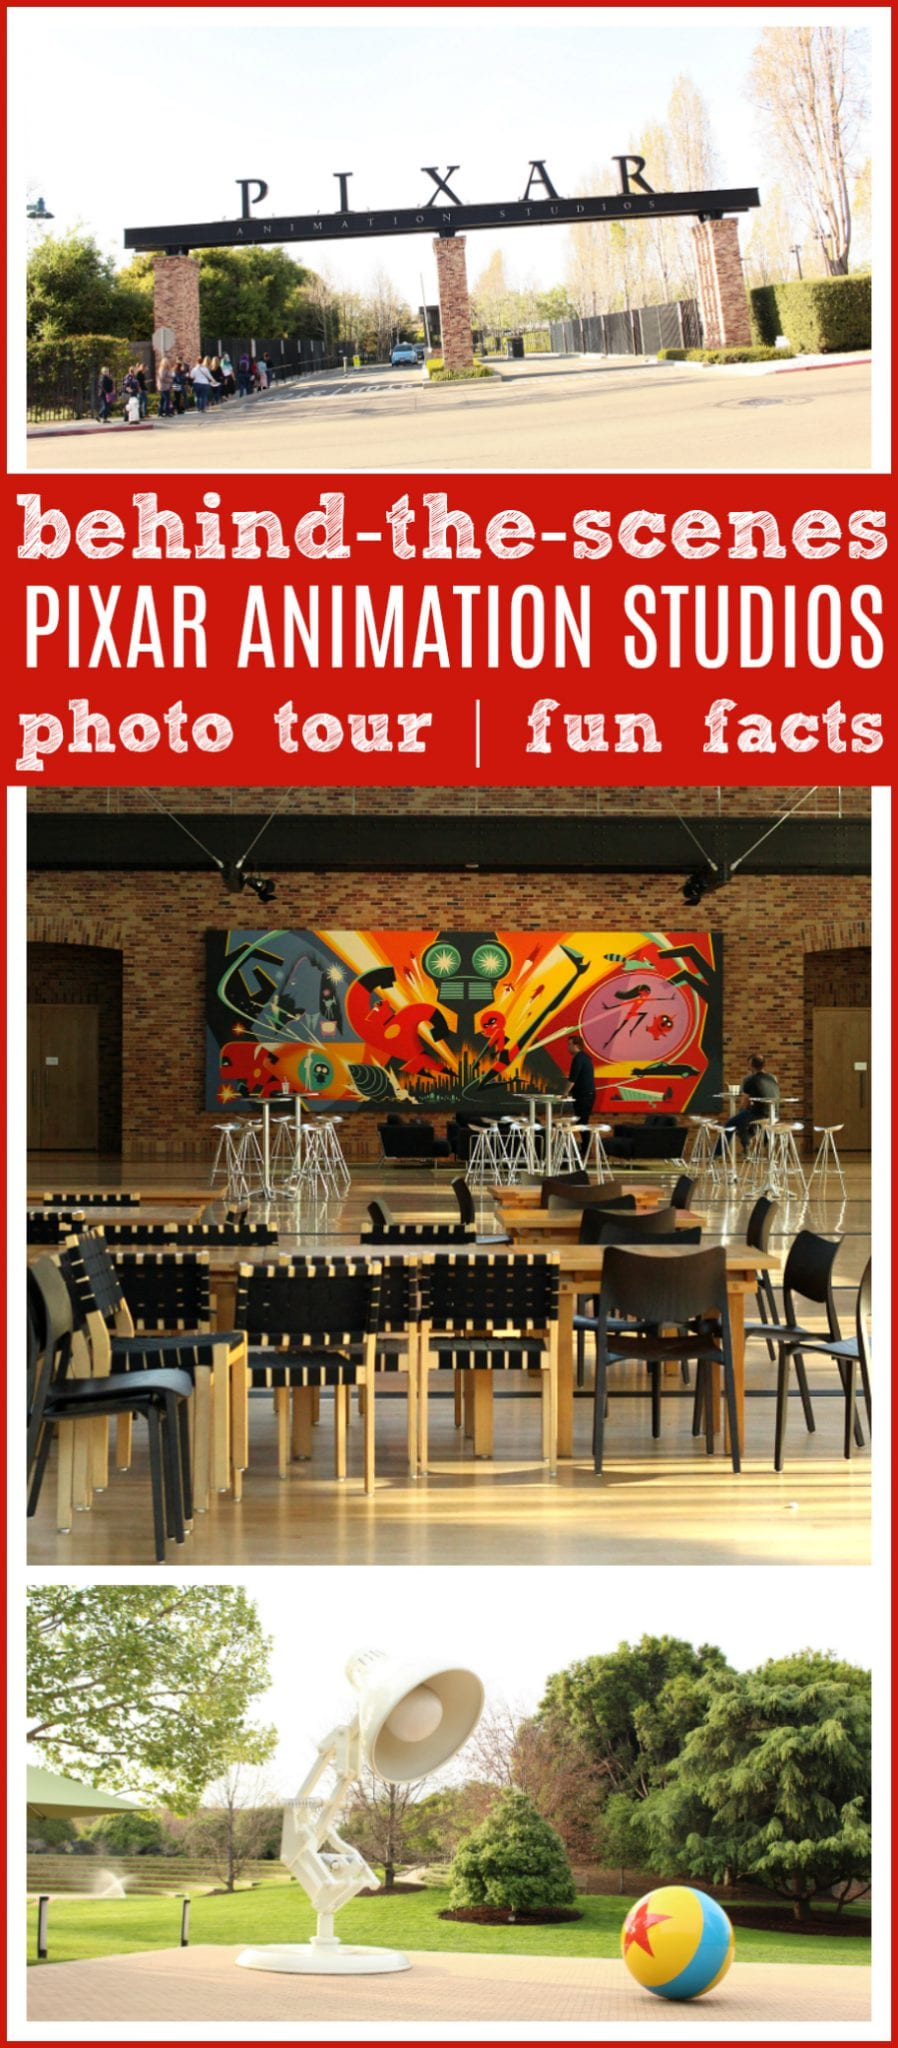 Pixar animation studios visit tips